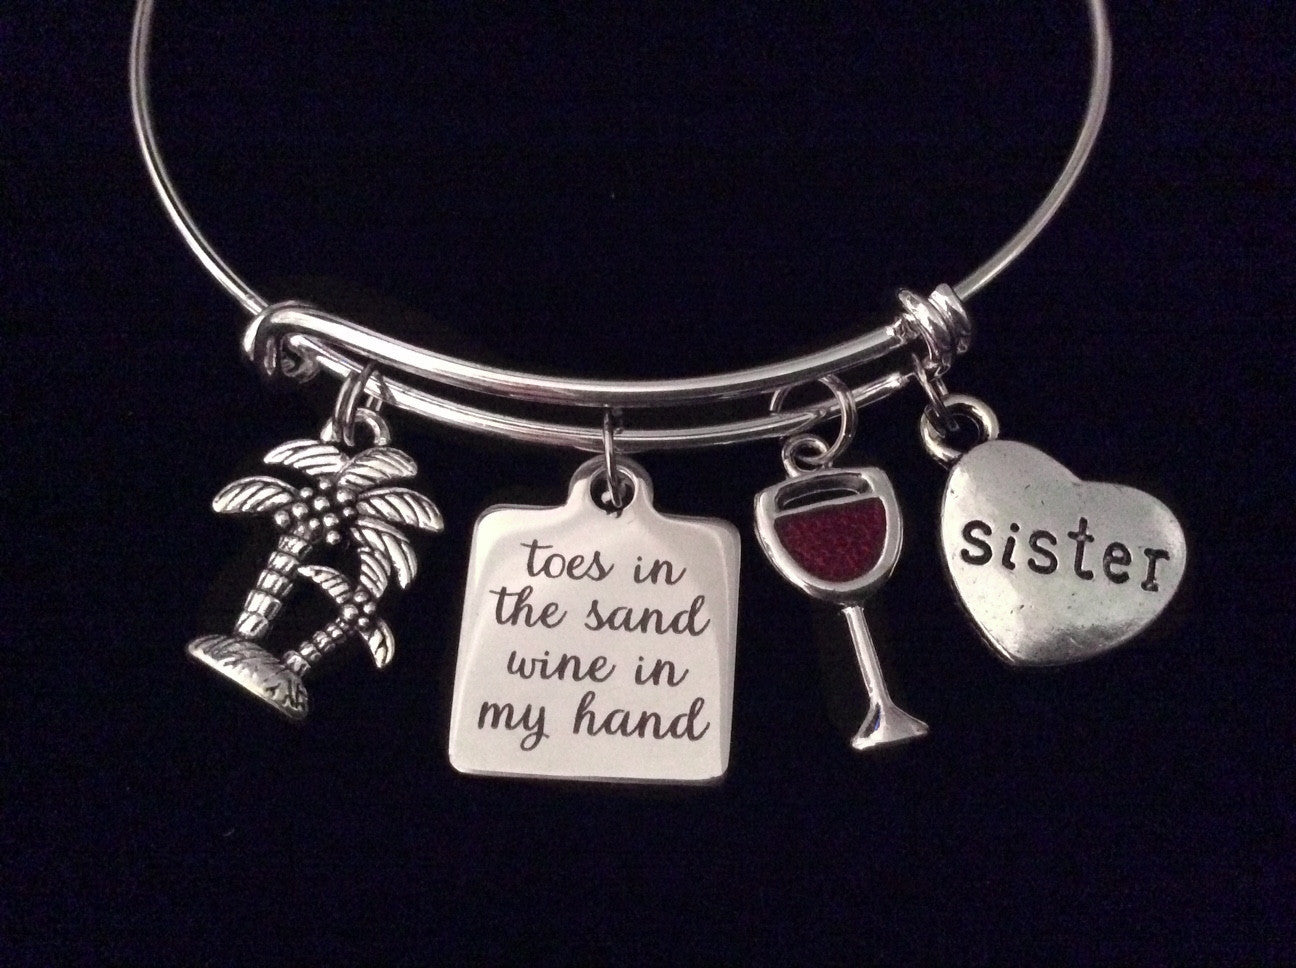 c3d98d2b4f72b Sister Toes in the Sand Wine in my Hand Expandable Silver Charm Bracelet  Ocean Nautical Adjustable Wire Bangle Gift